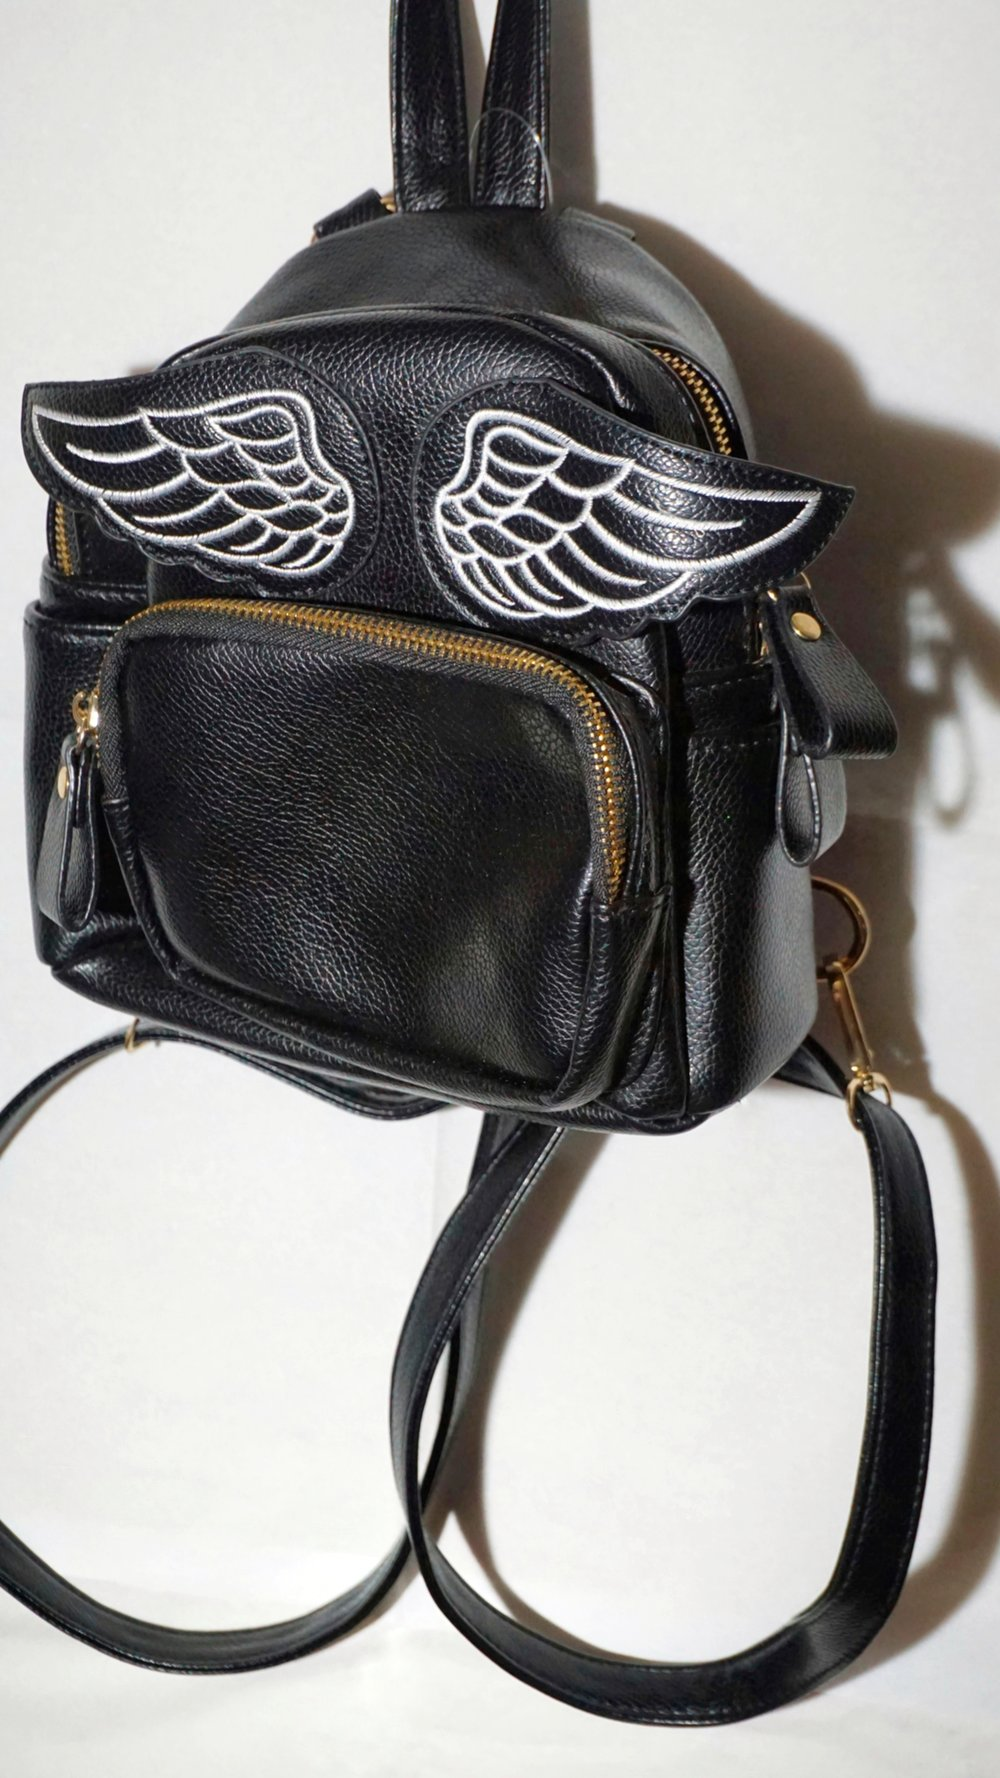 the wings of this bag call out to theAngels & Airwavesfan girl in me. -